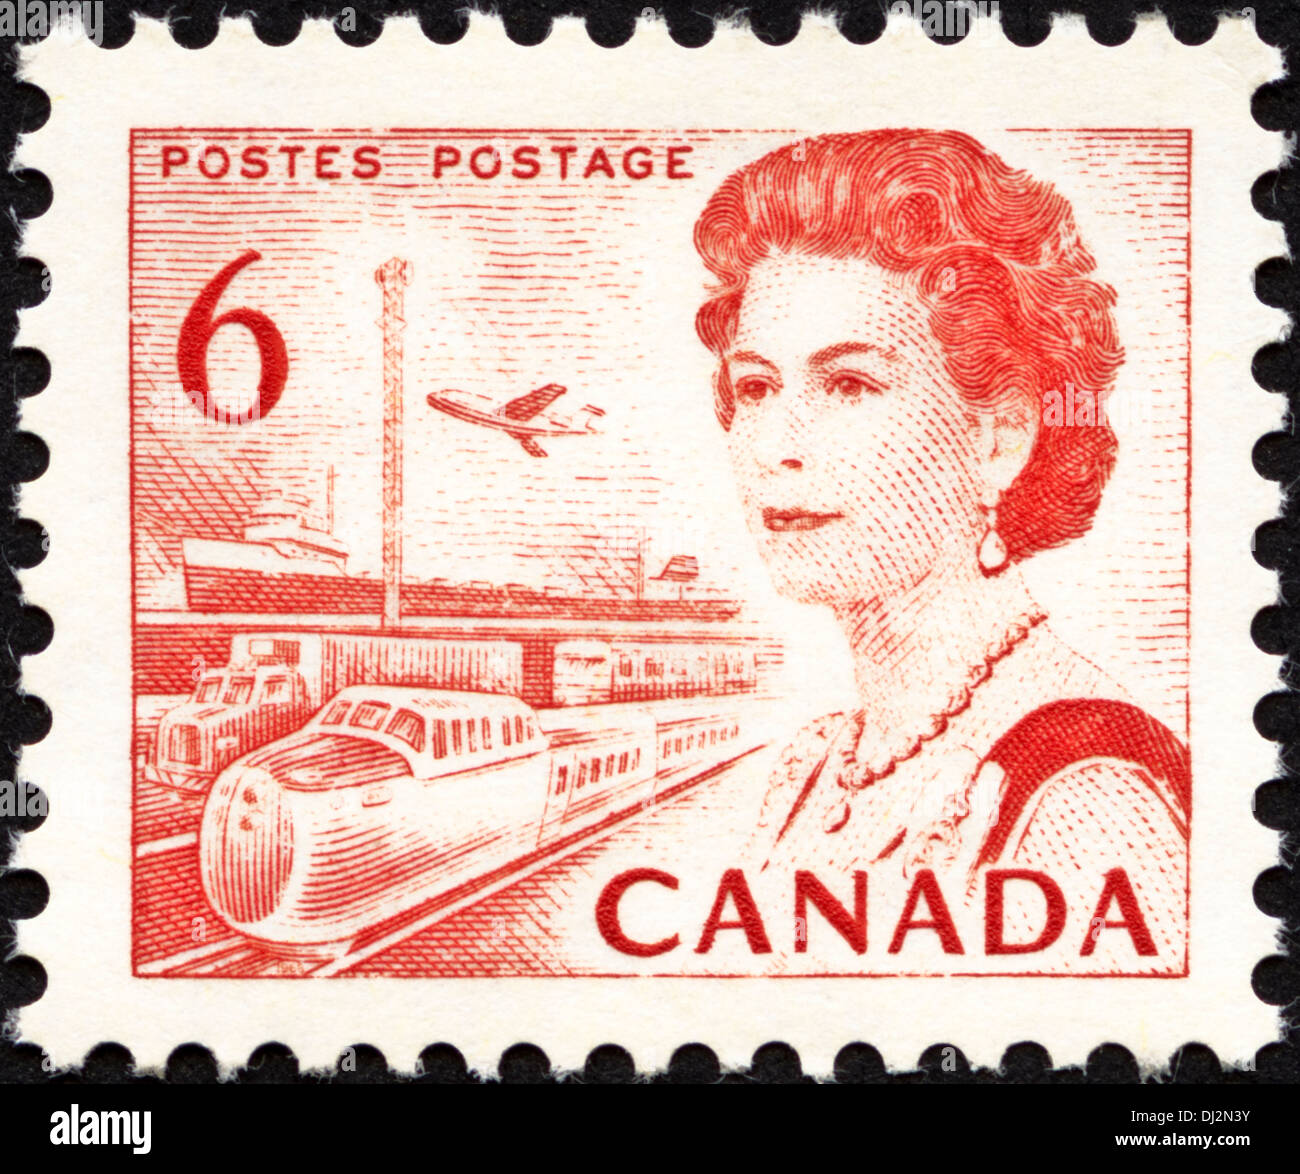 Postage Stamp Canada 6c Featuring Transport And Communications Dated